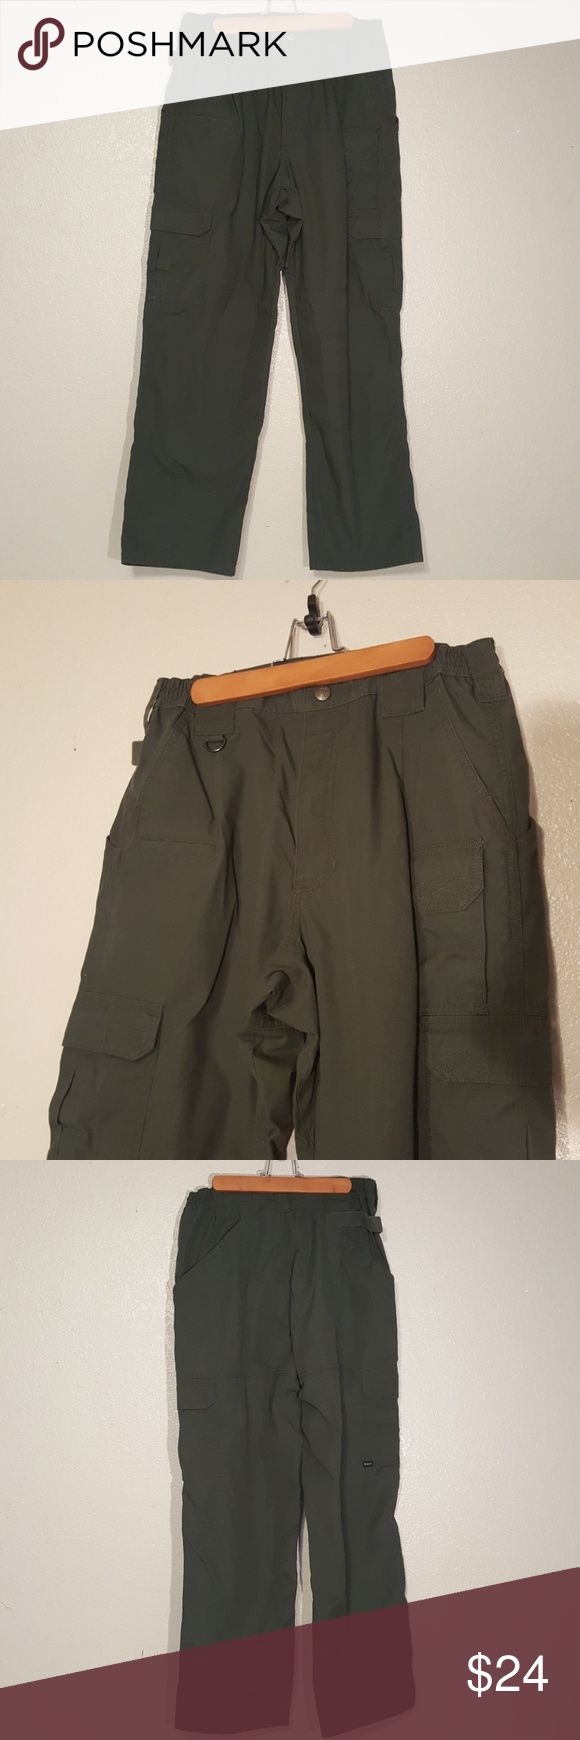 511 TACTICAL PANTS Military green 511 Tactical Cargo Pants.  Size 32/30.  Pants were worn once, excellent condition.  No rips tears or stains. 5.11 Tactical Pants Cargo